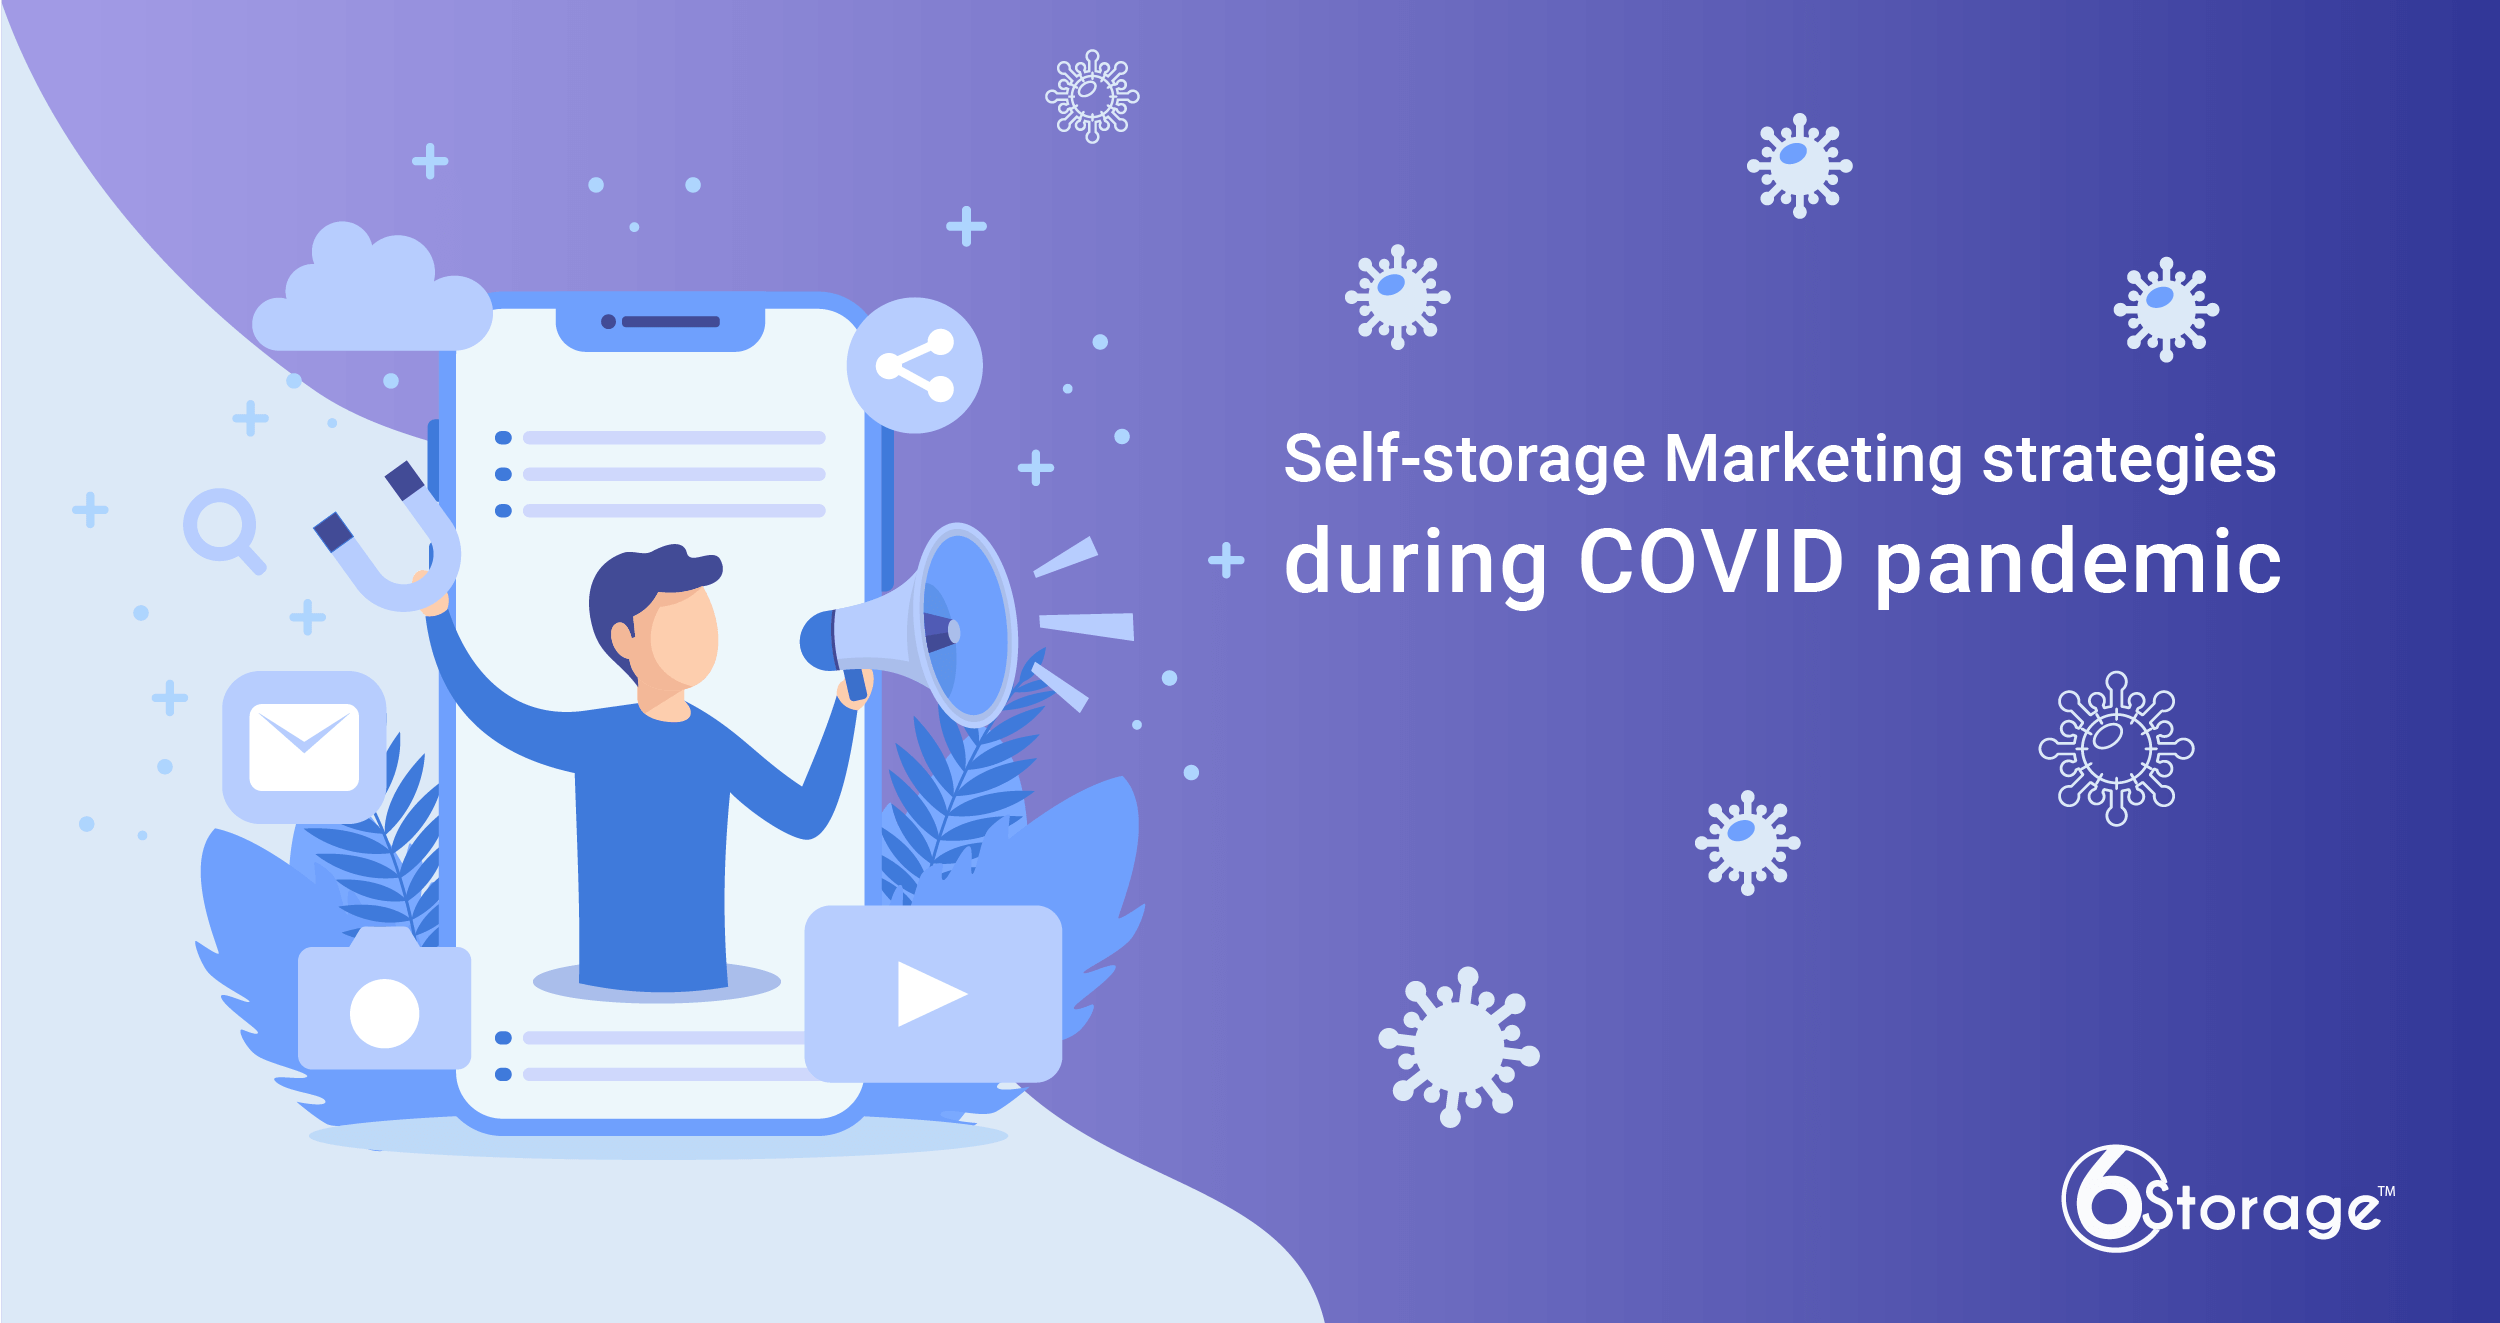 self-storage marketing during covid banner